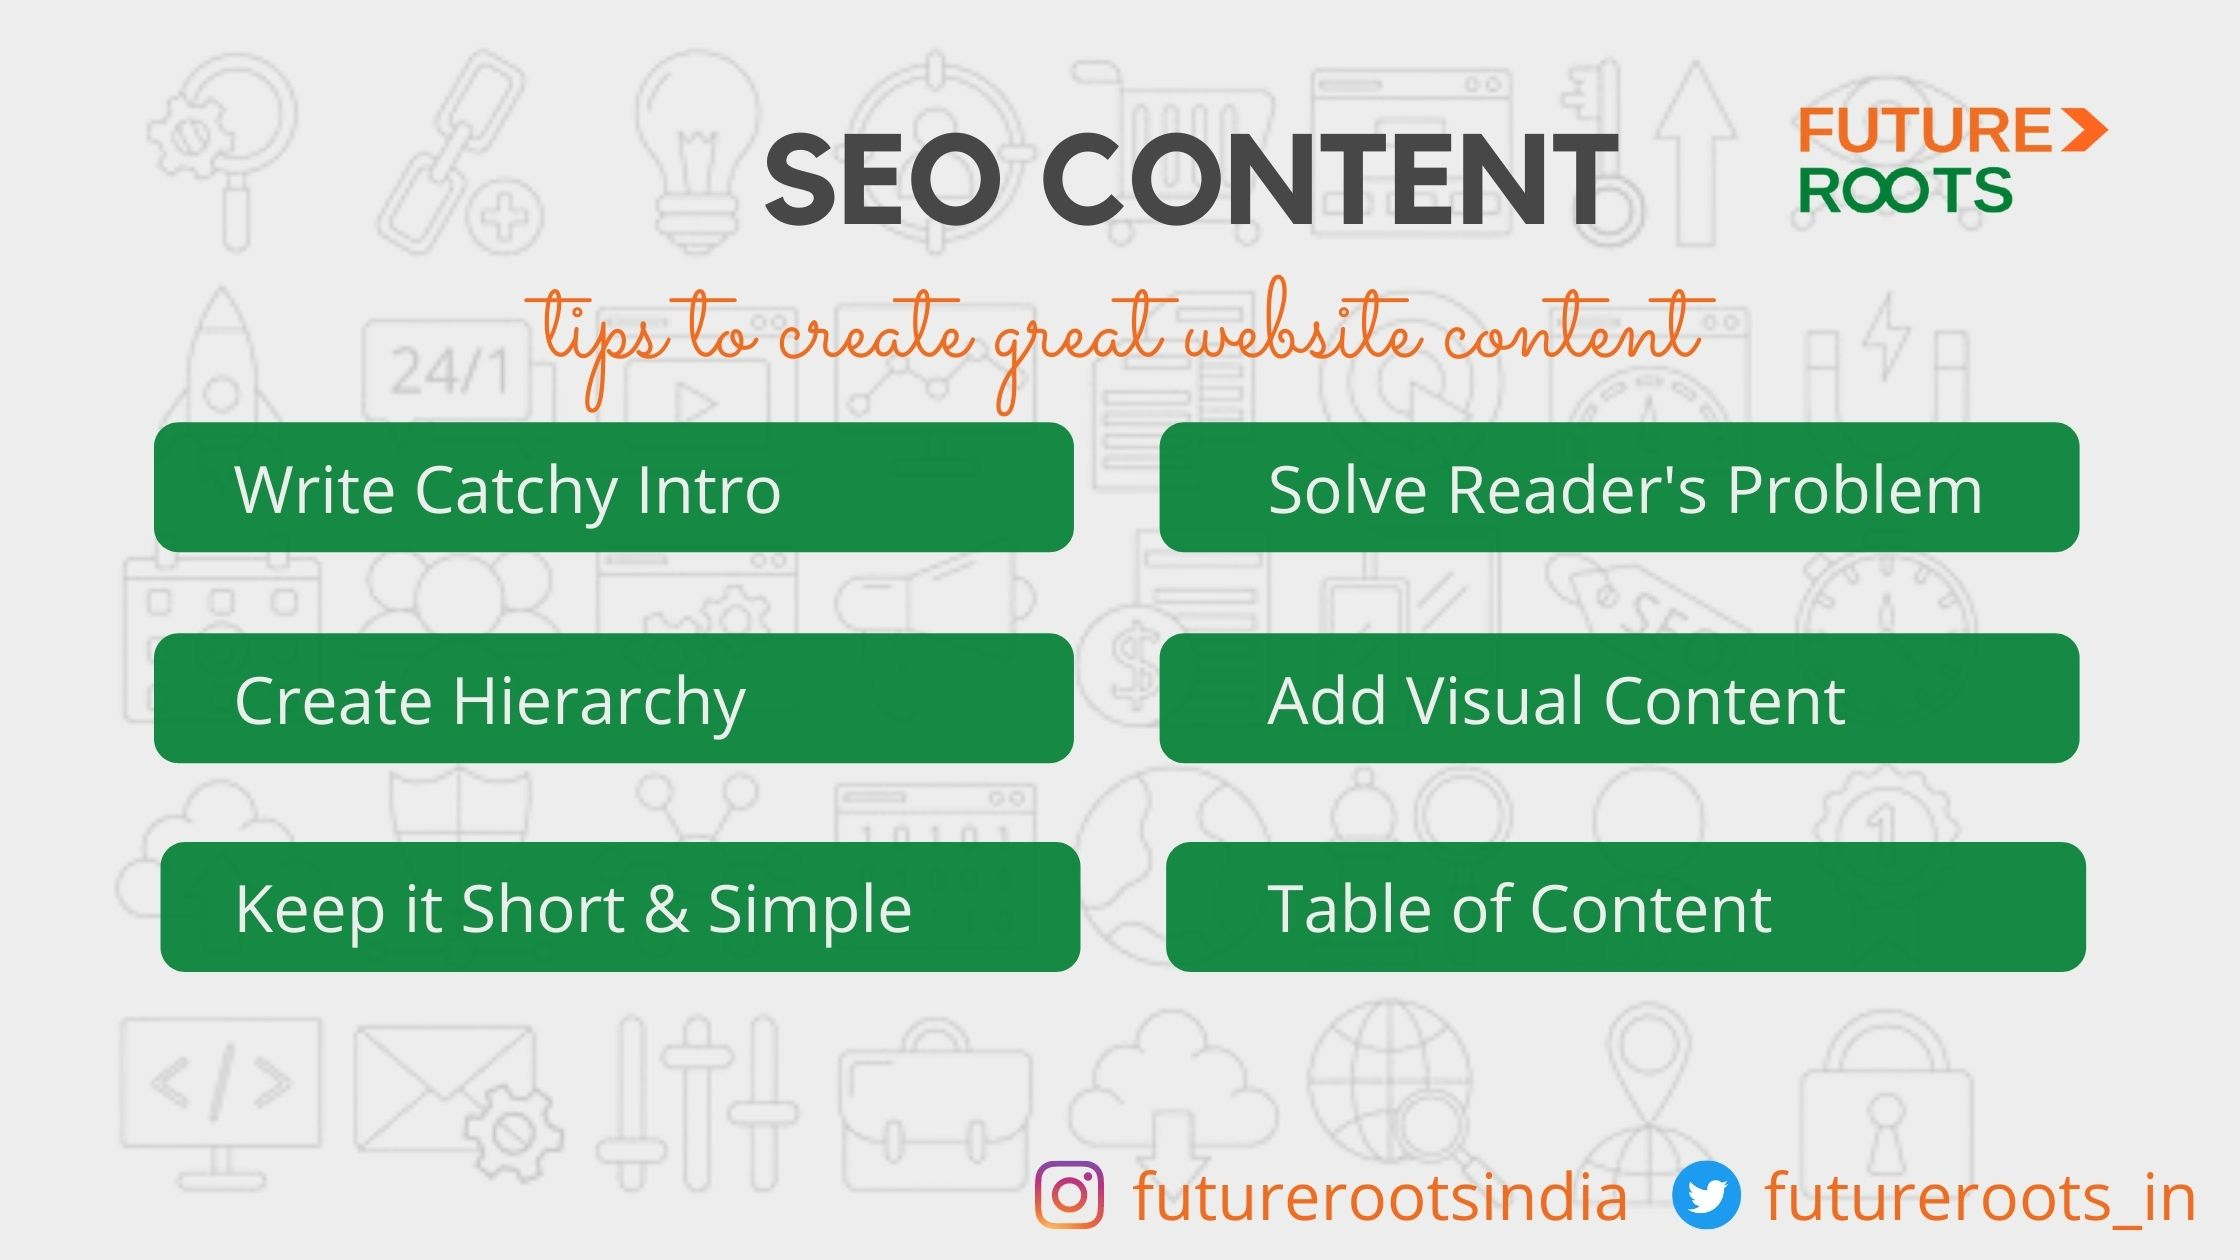 Tips to create SEO friendly content